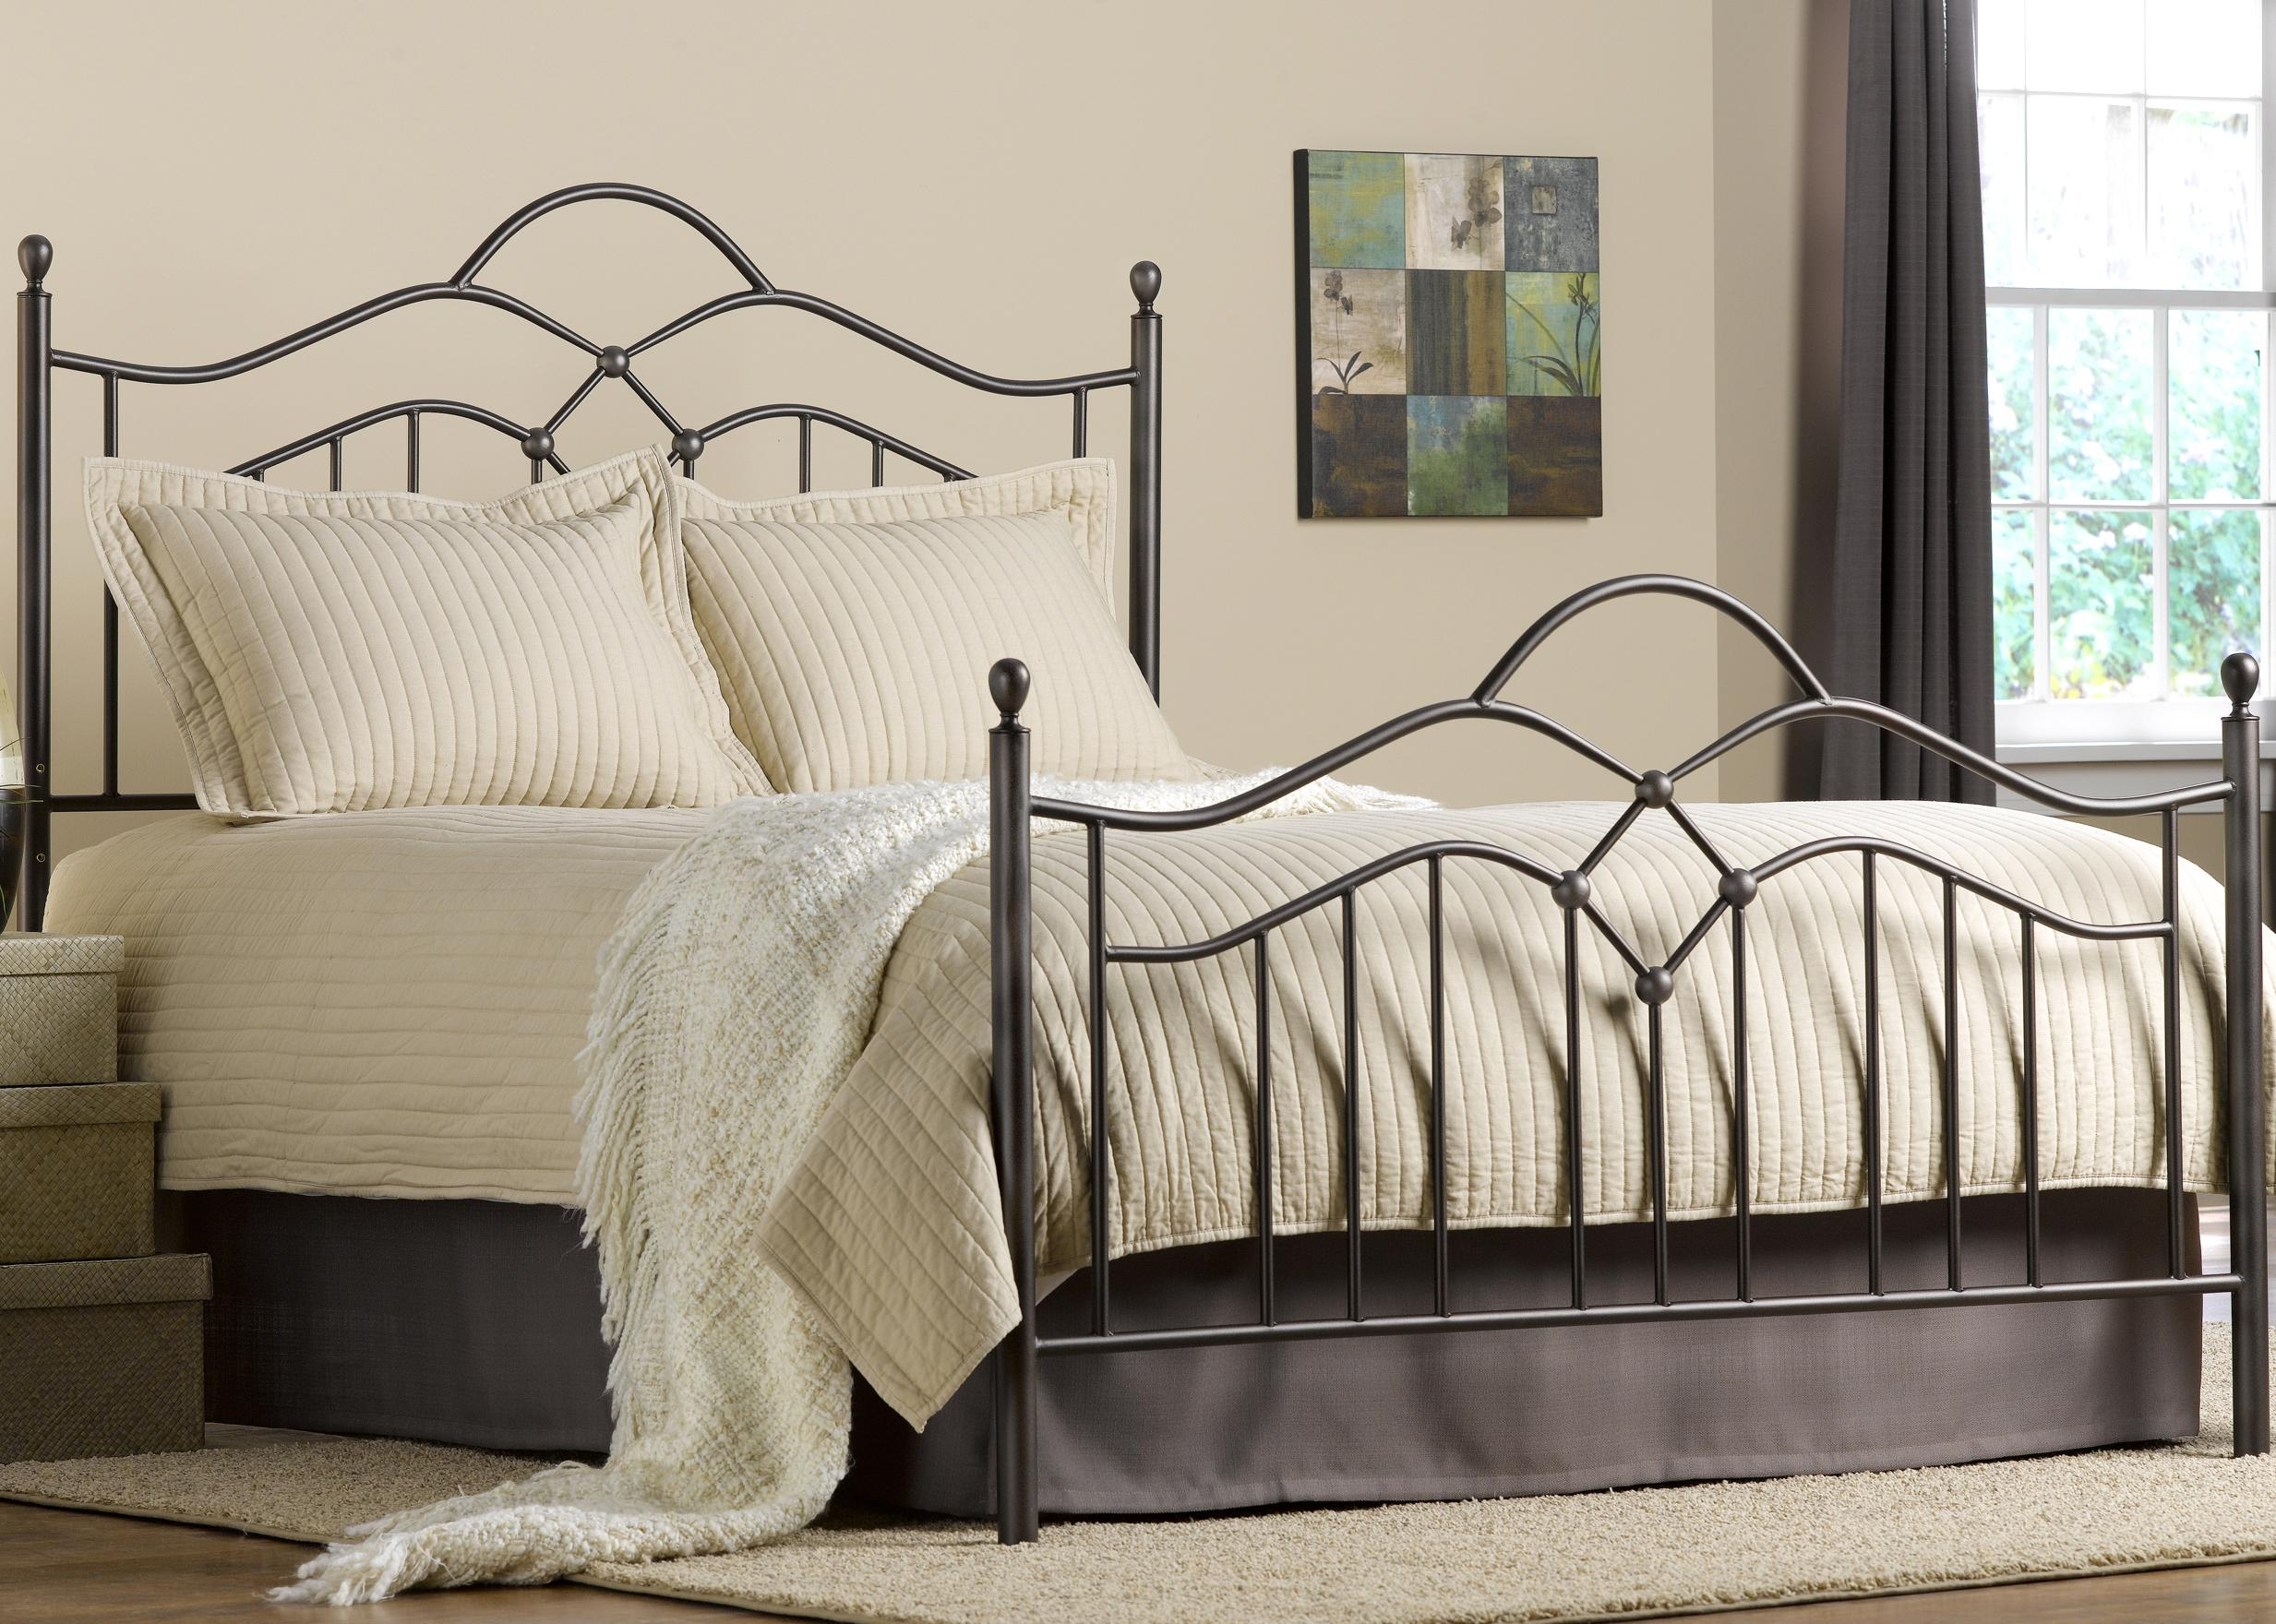 Hillsdale Metal Beds Full Oklahoma Bed - Item Number: 1300BFR